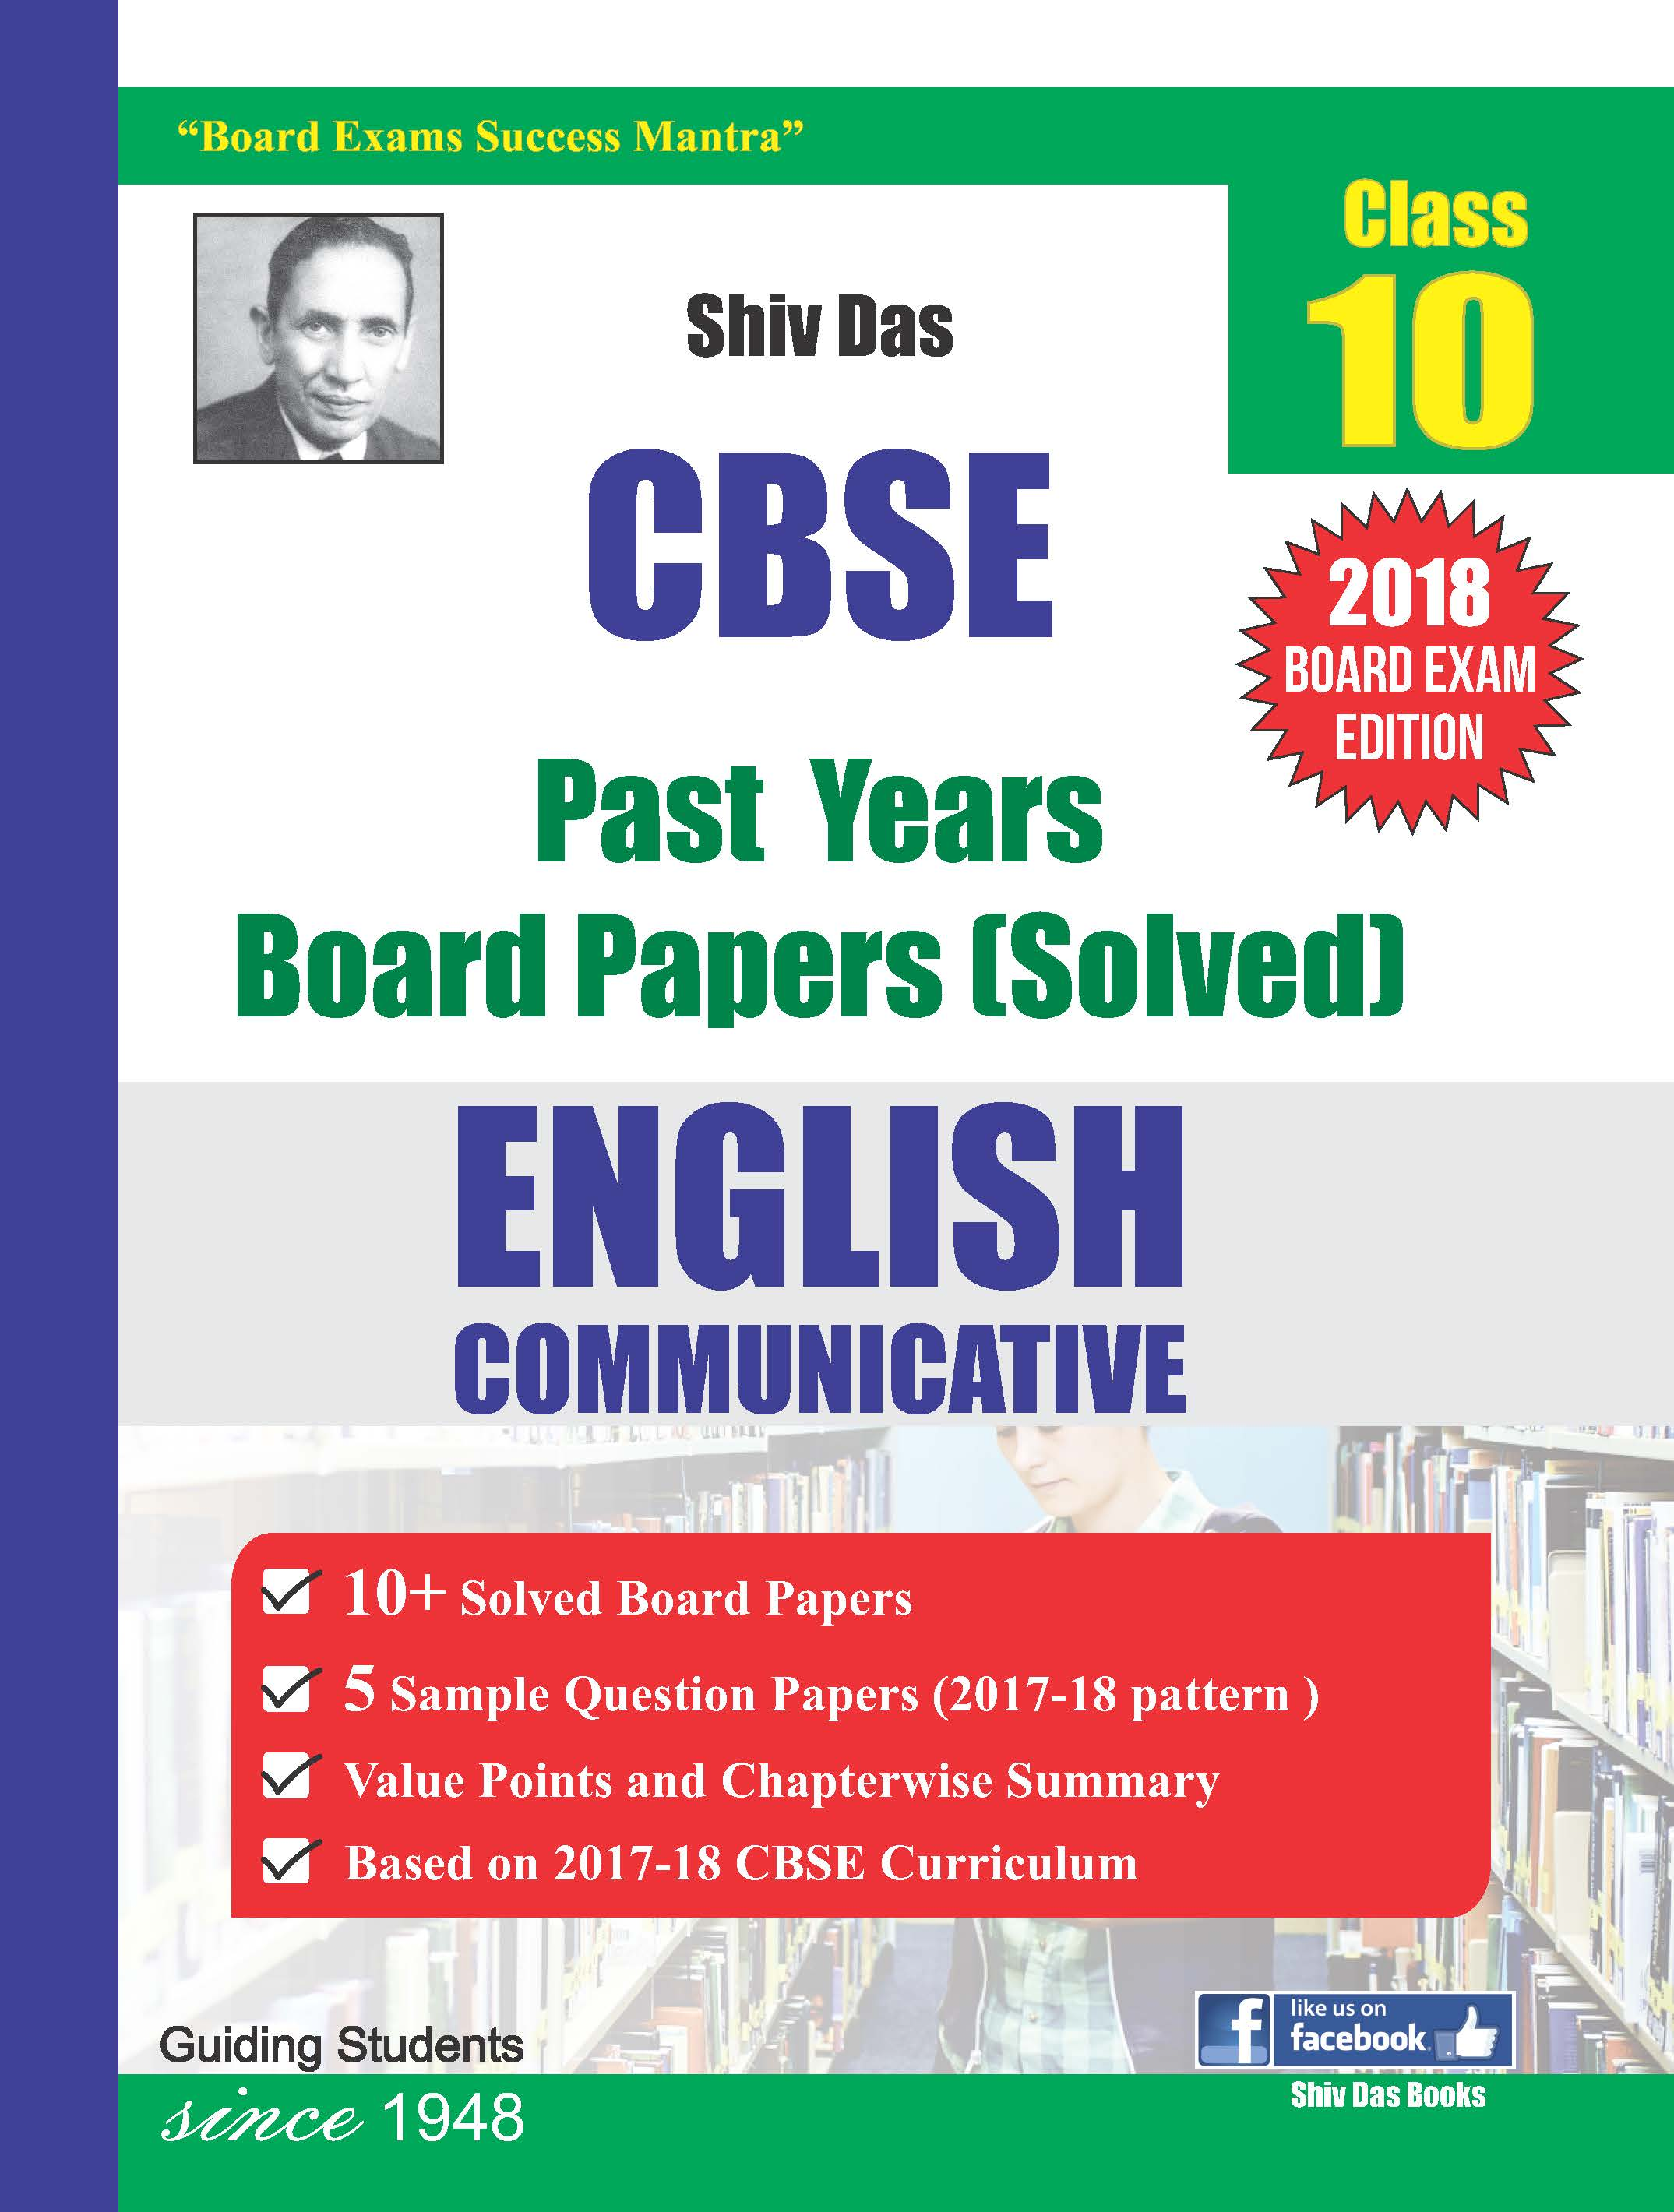 Class 10 CBSE Past Year Board Papers (Solved) English Communicative